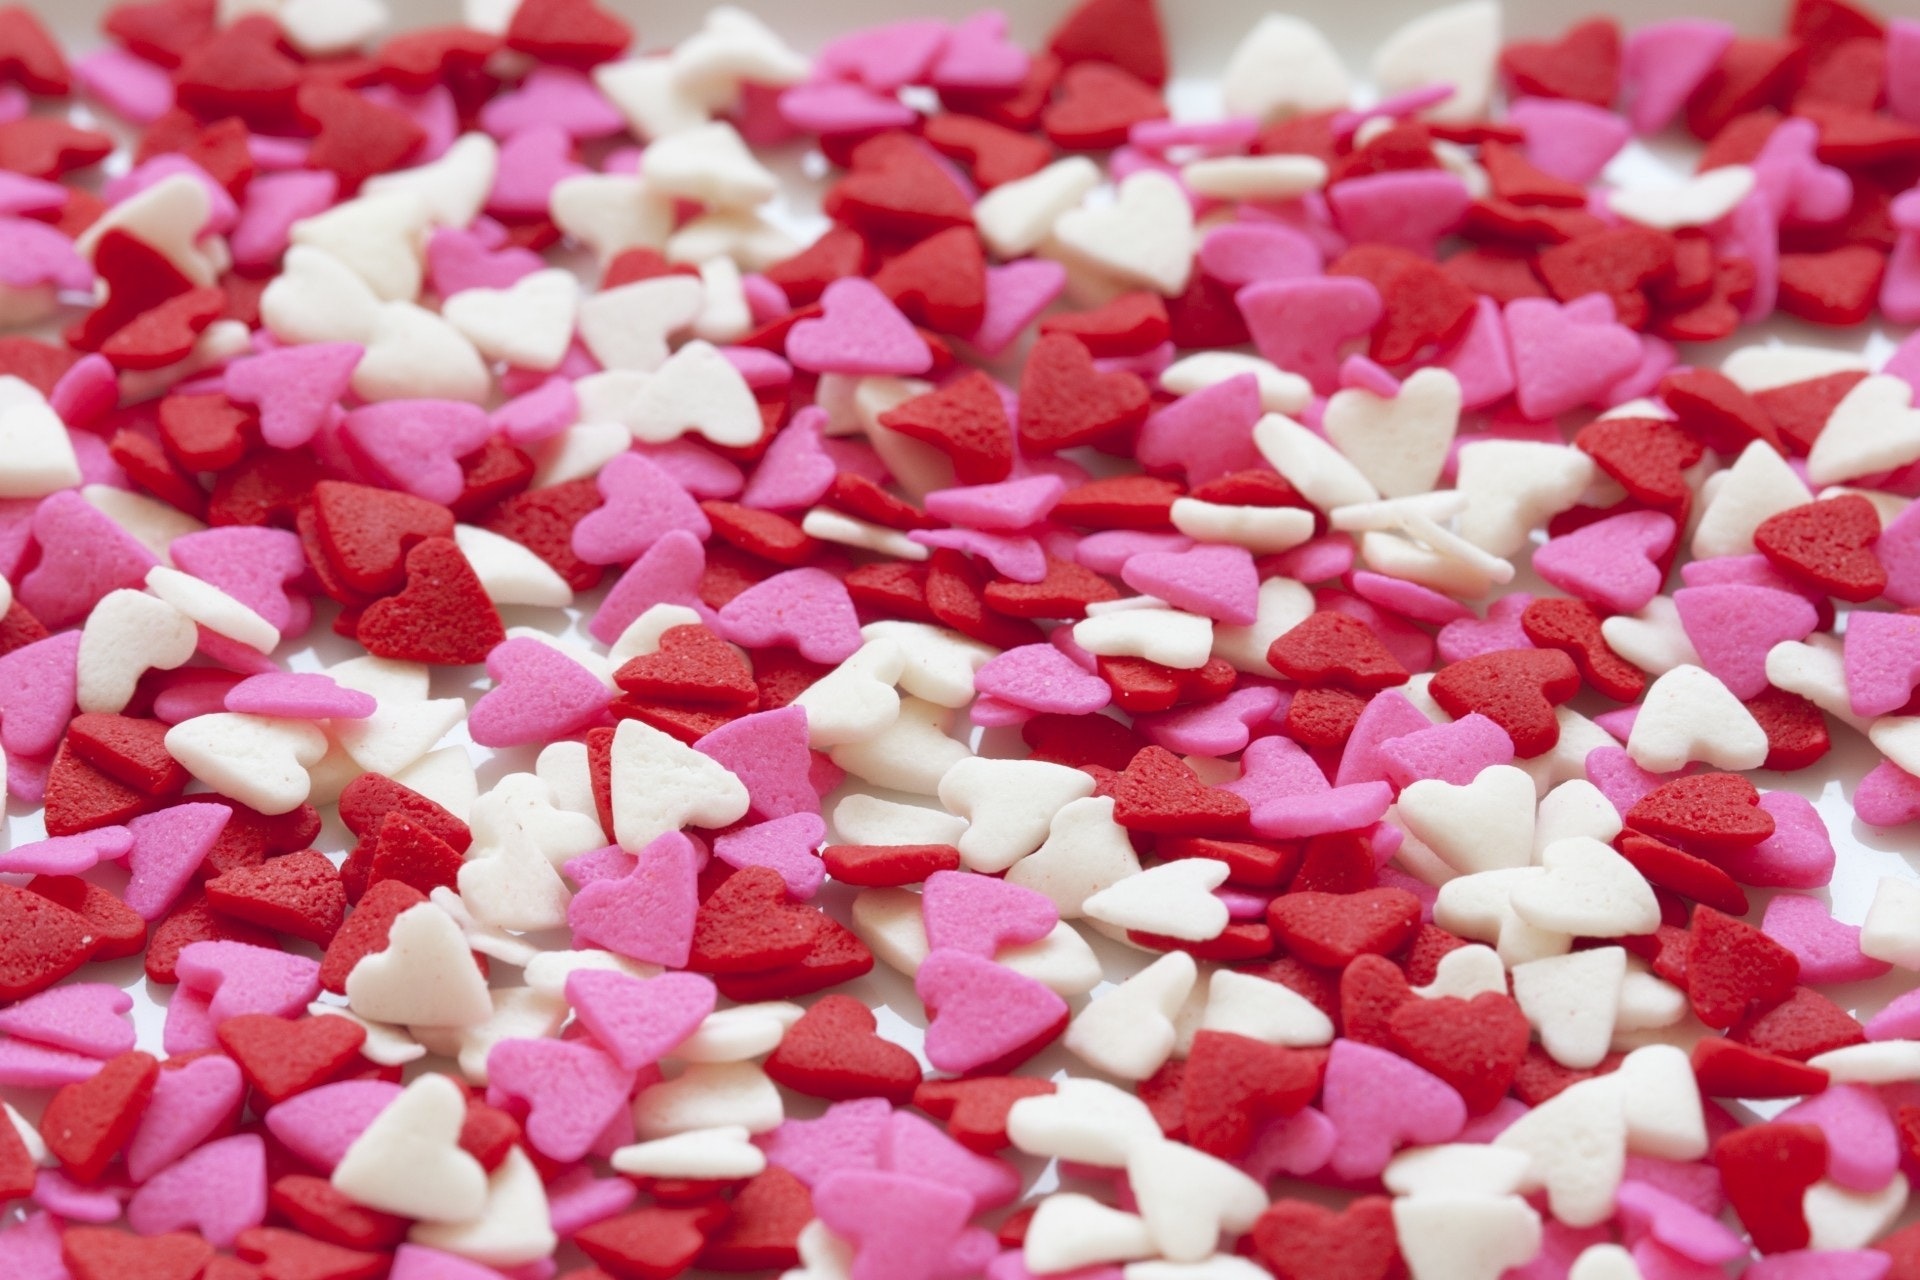 Selective Focus of White Red and Pink Hearts Sprinkles, Heart, Sugar, Sprinkles, Shape, HQ Photo